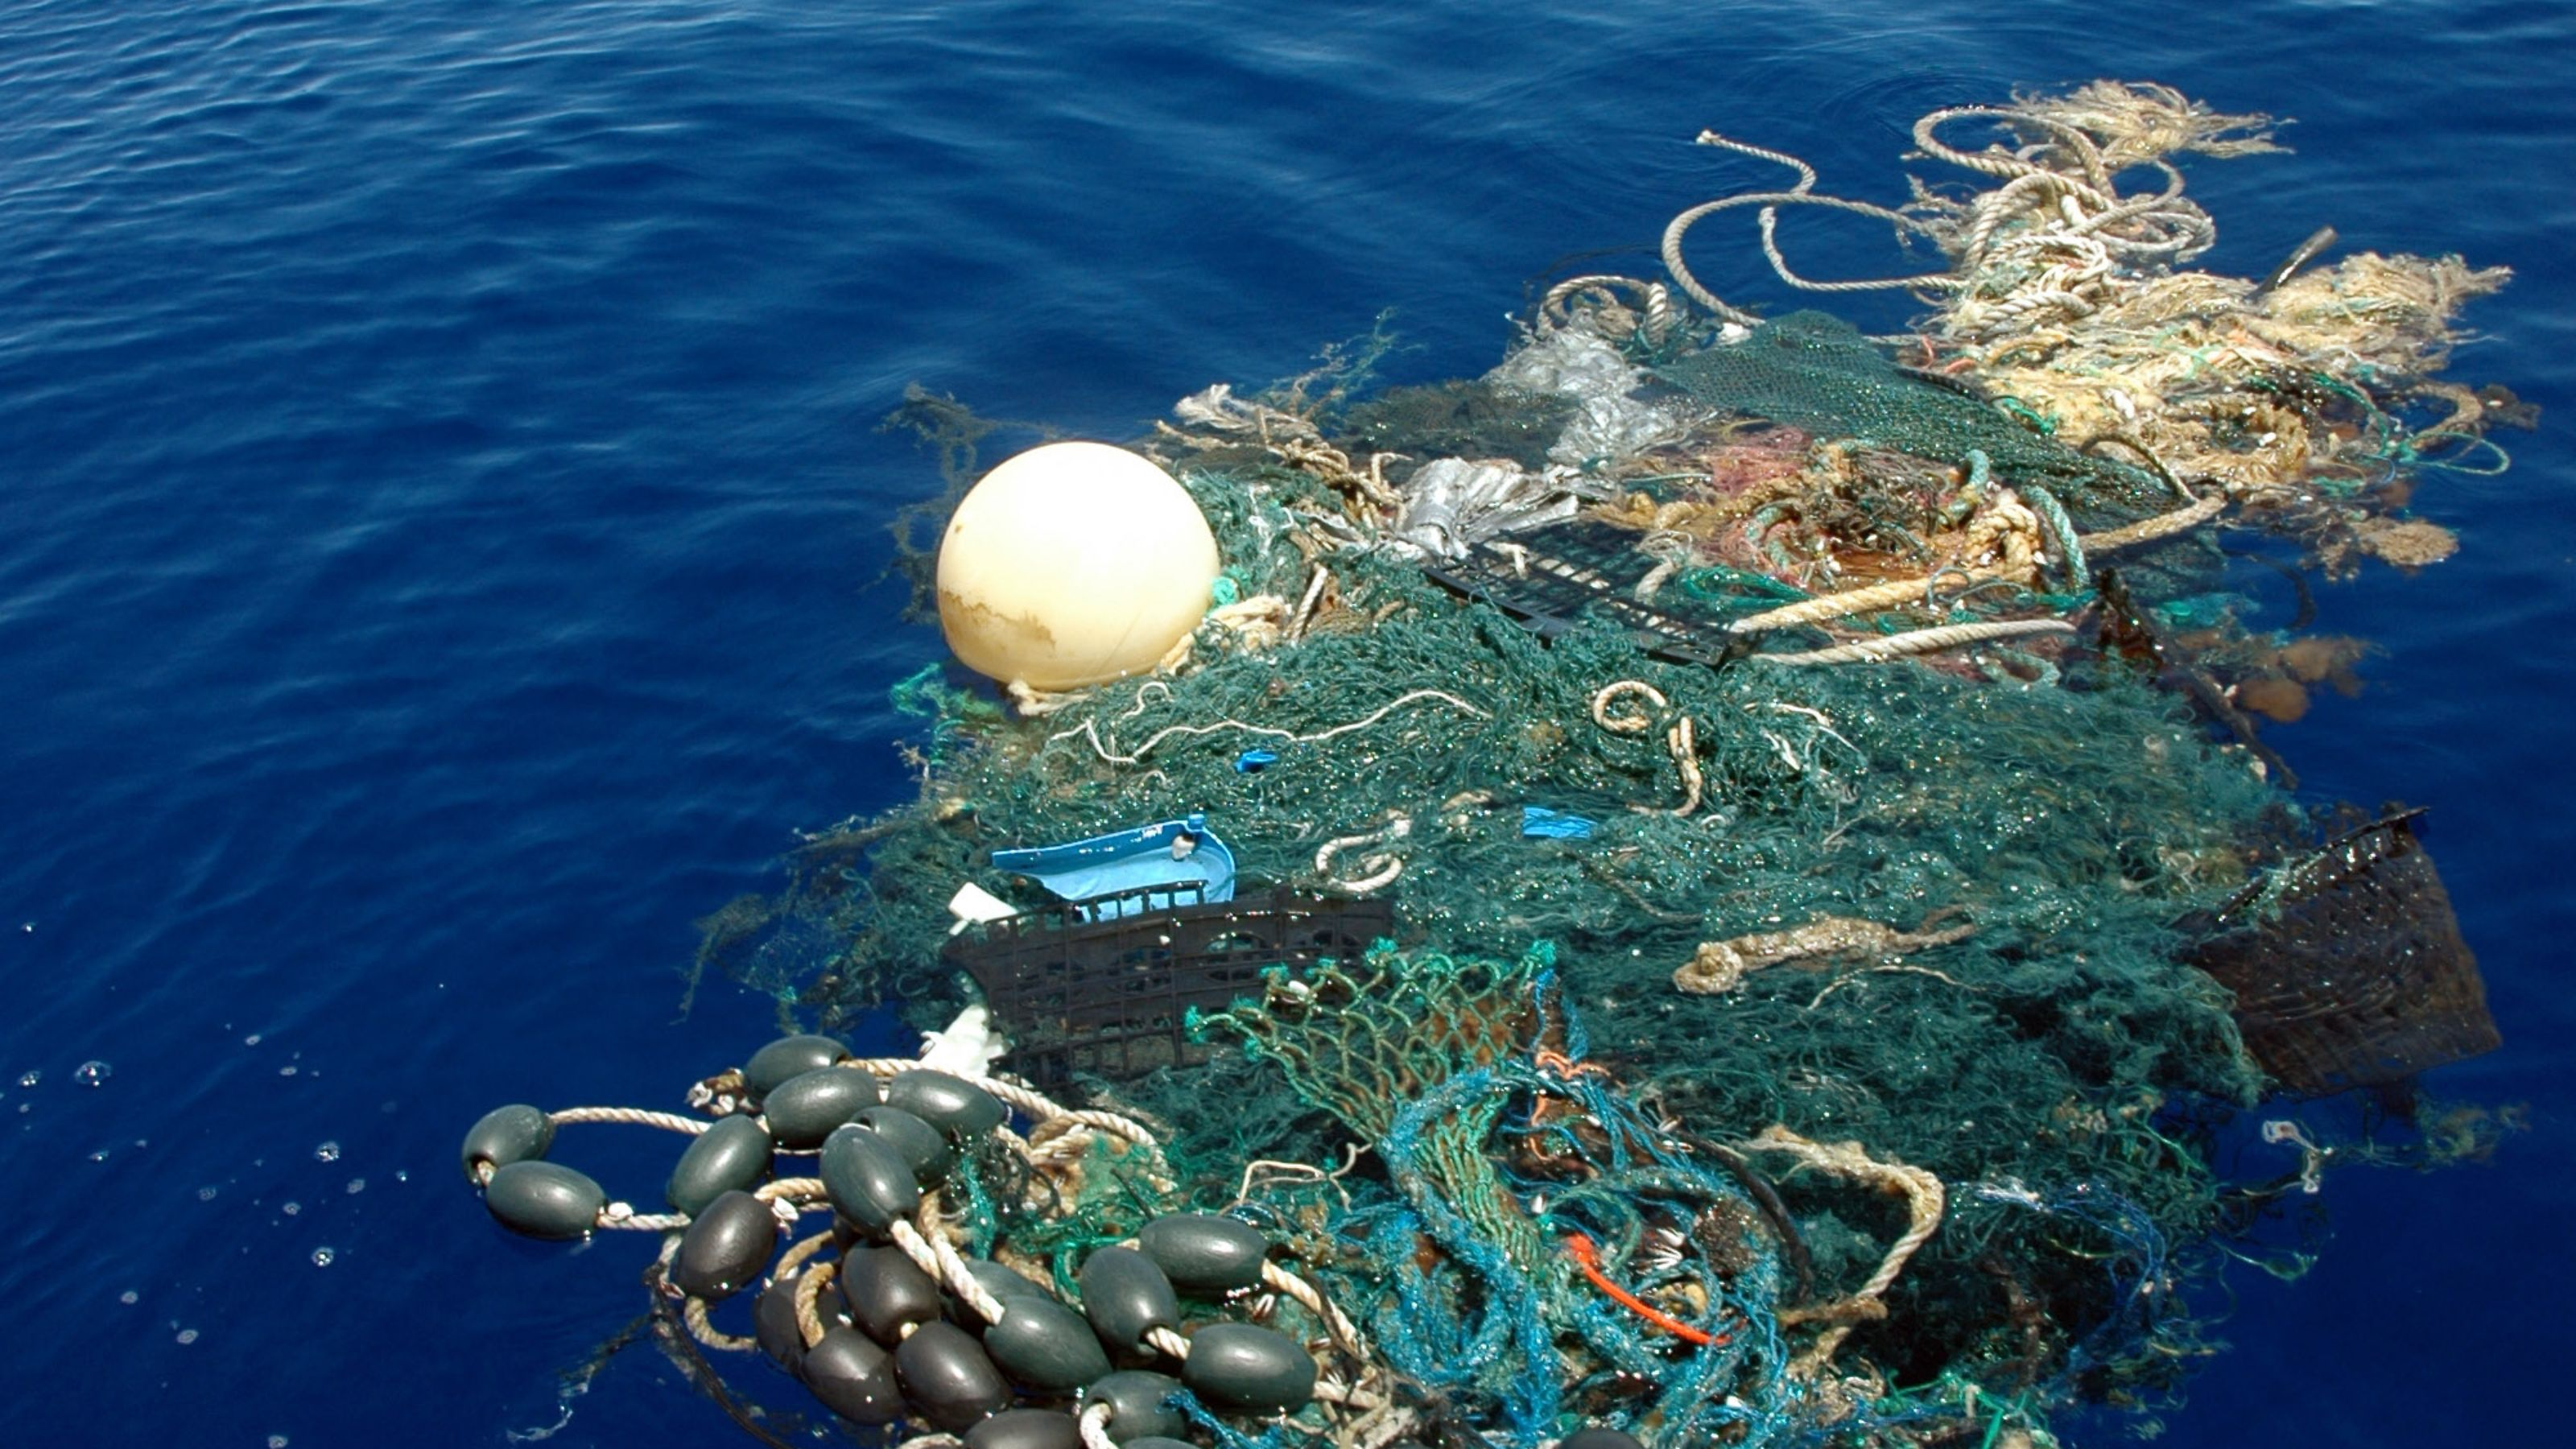 270,000 Tons of Plastic Found in Oceans